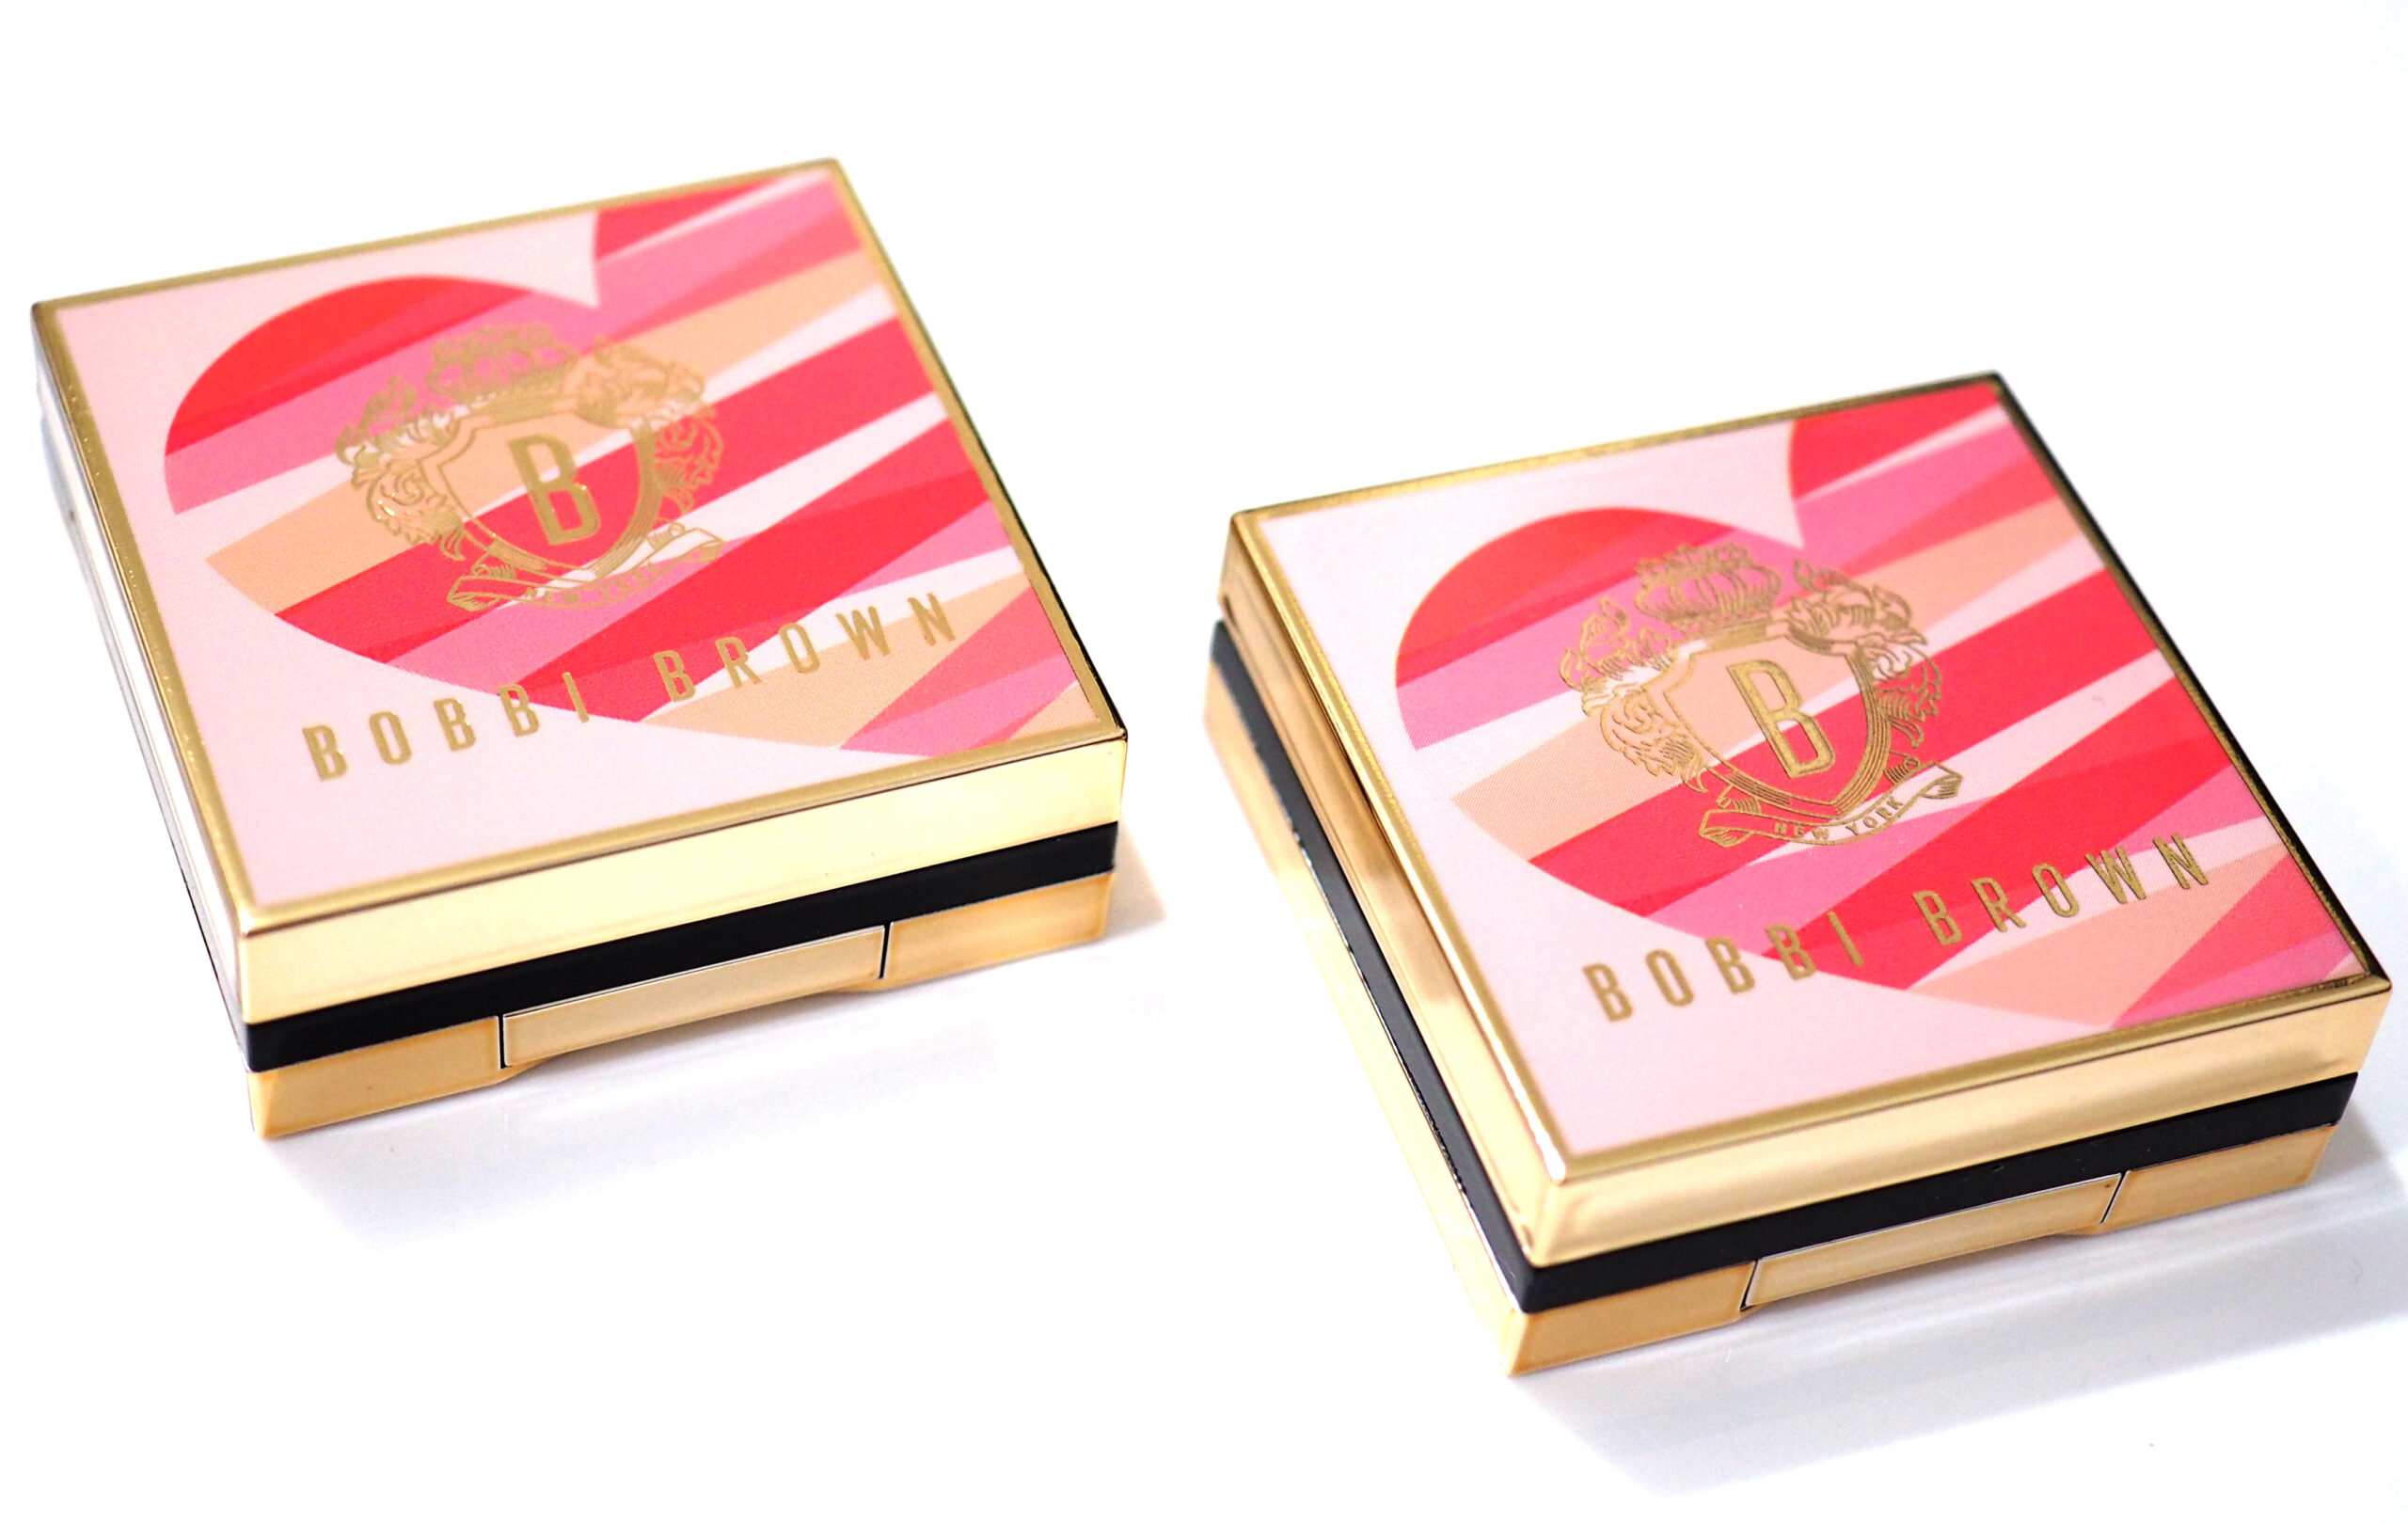 Bobbi Brown Love Radiance Collection Review and Swatches